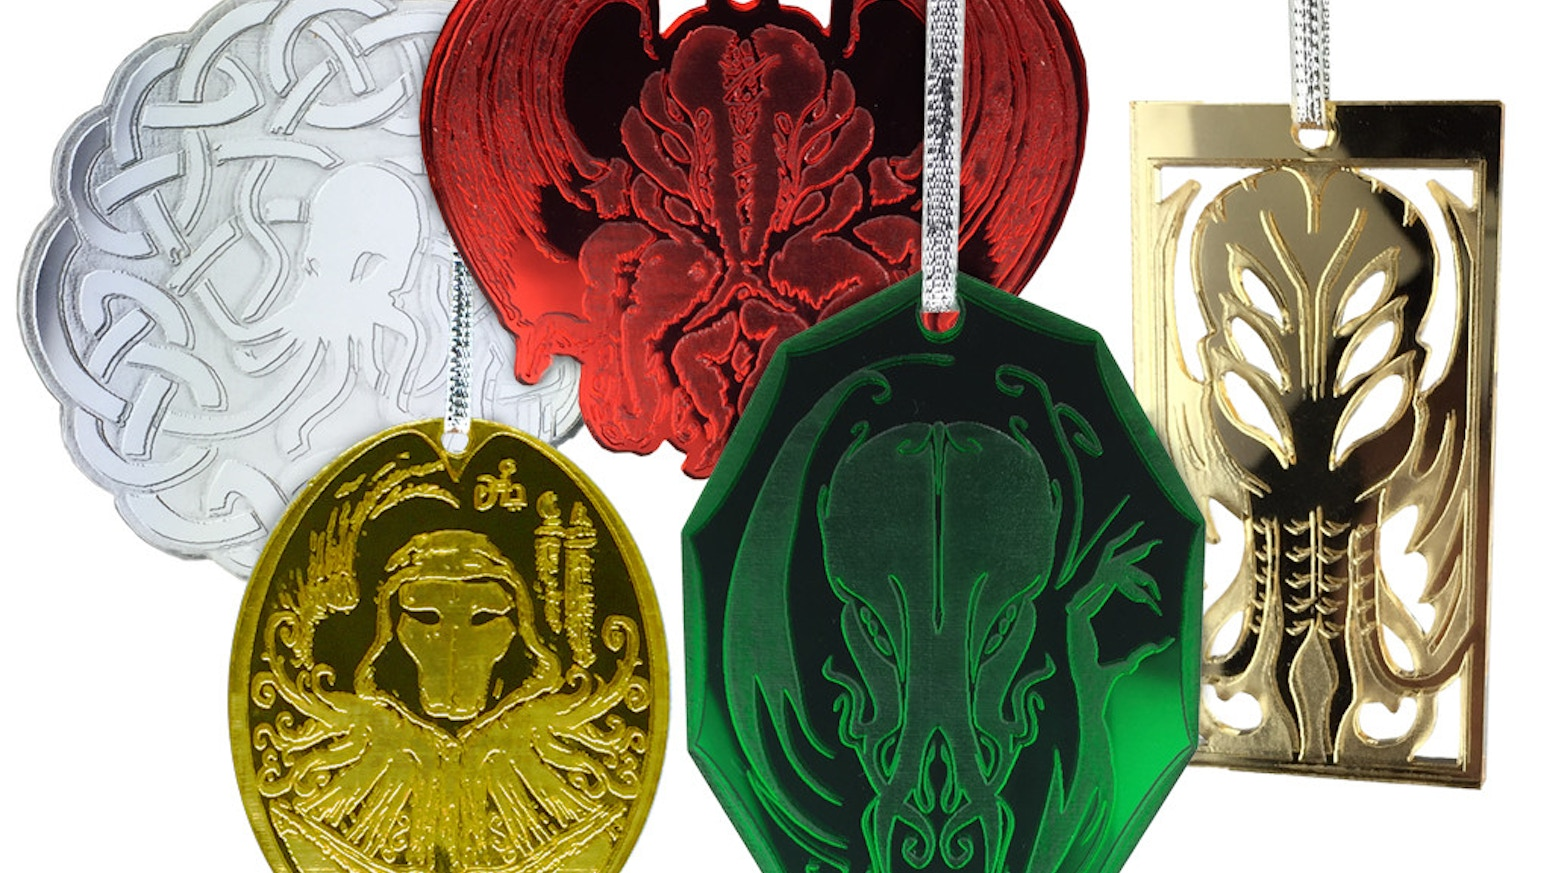 Horror Christmas Ornaments.Cthulhu Holiday Ornaments Lovecraft Horror On Your Tree By